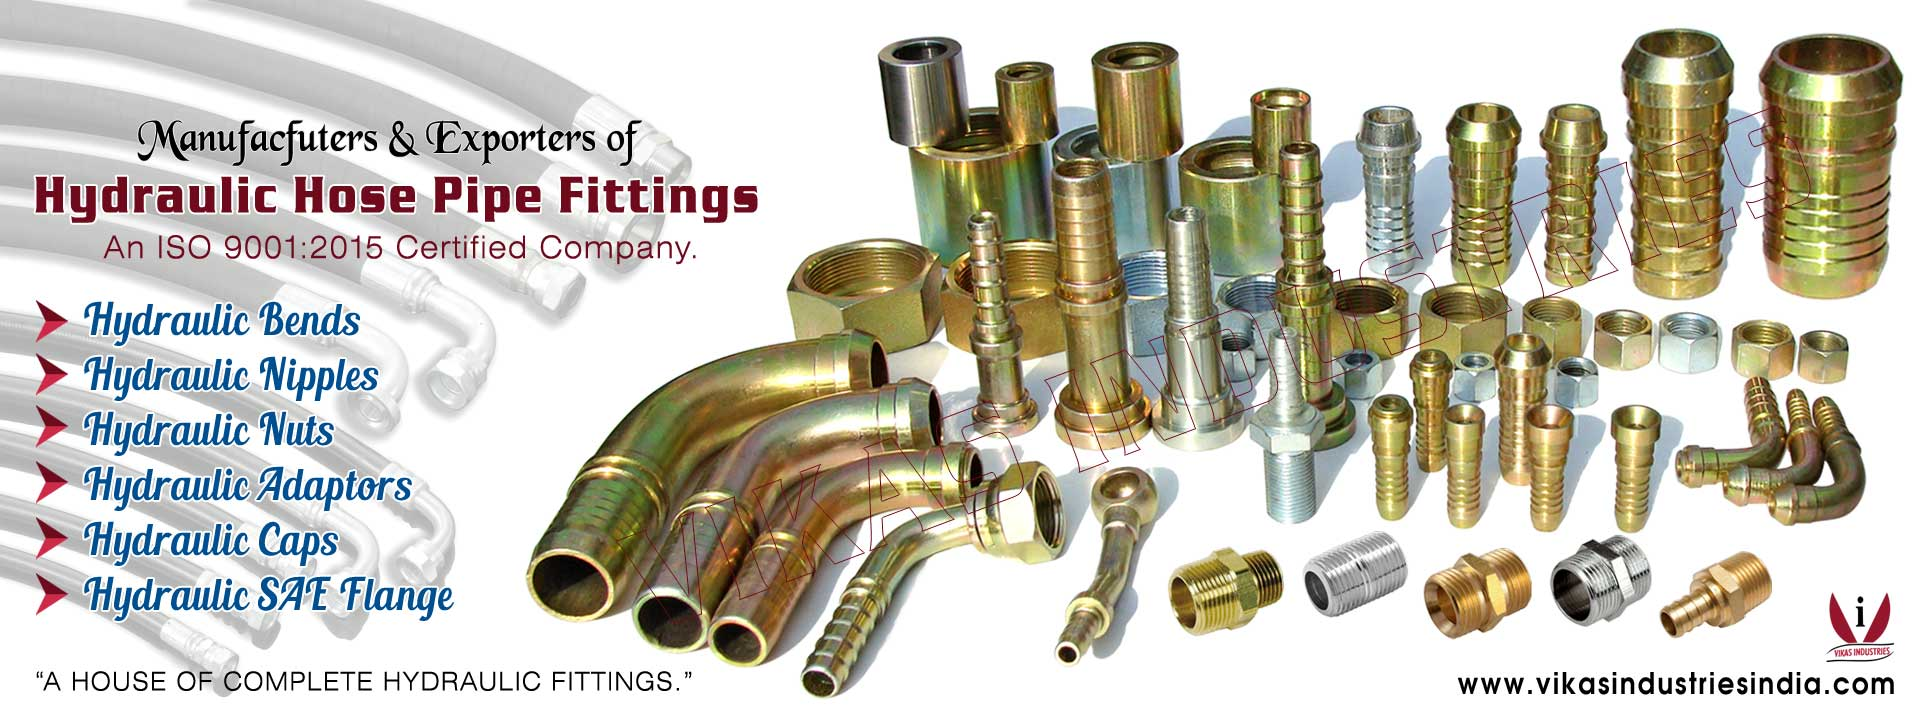 Hydraulic Hose Pipe Fittings manufacturers exporters suppliers in India Punjab Ludhiana